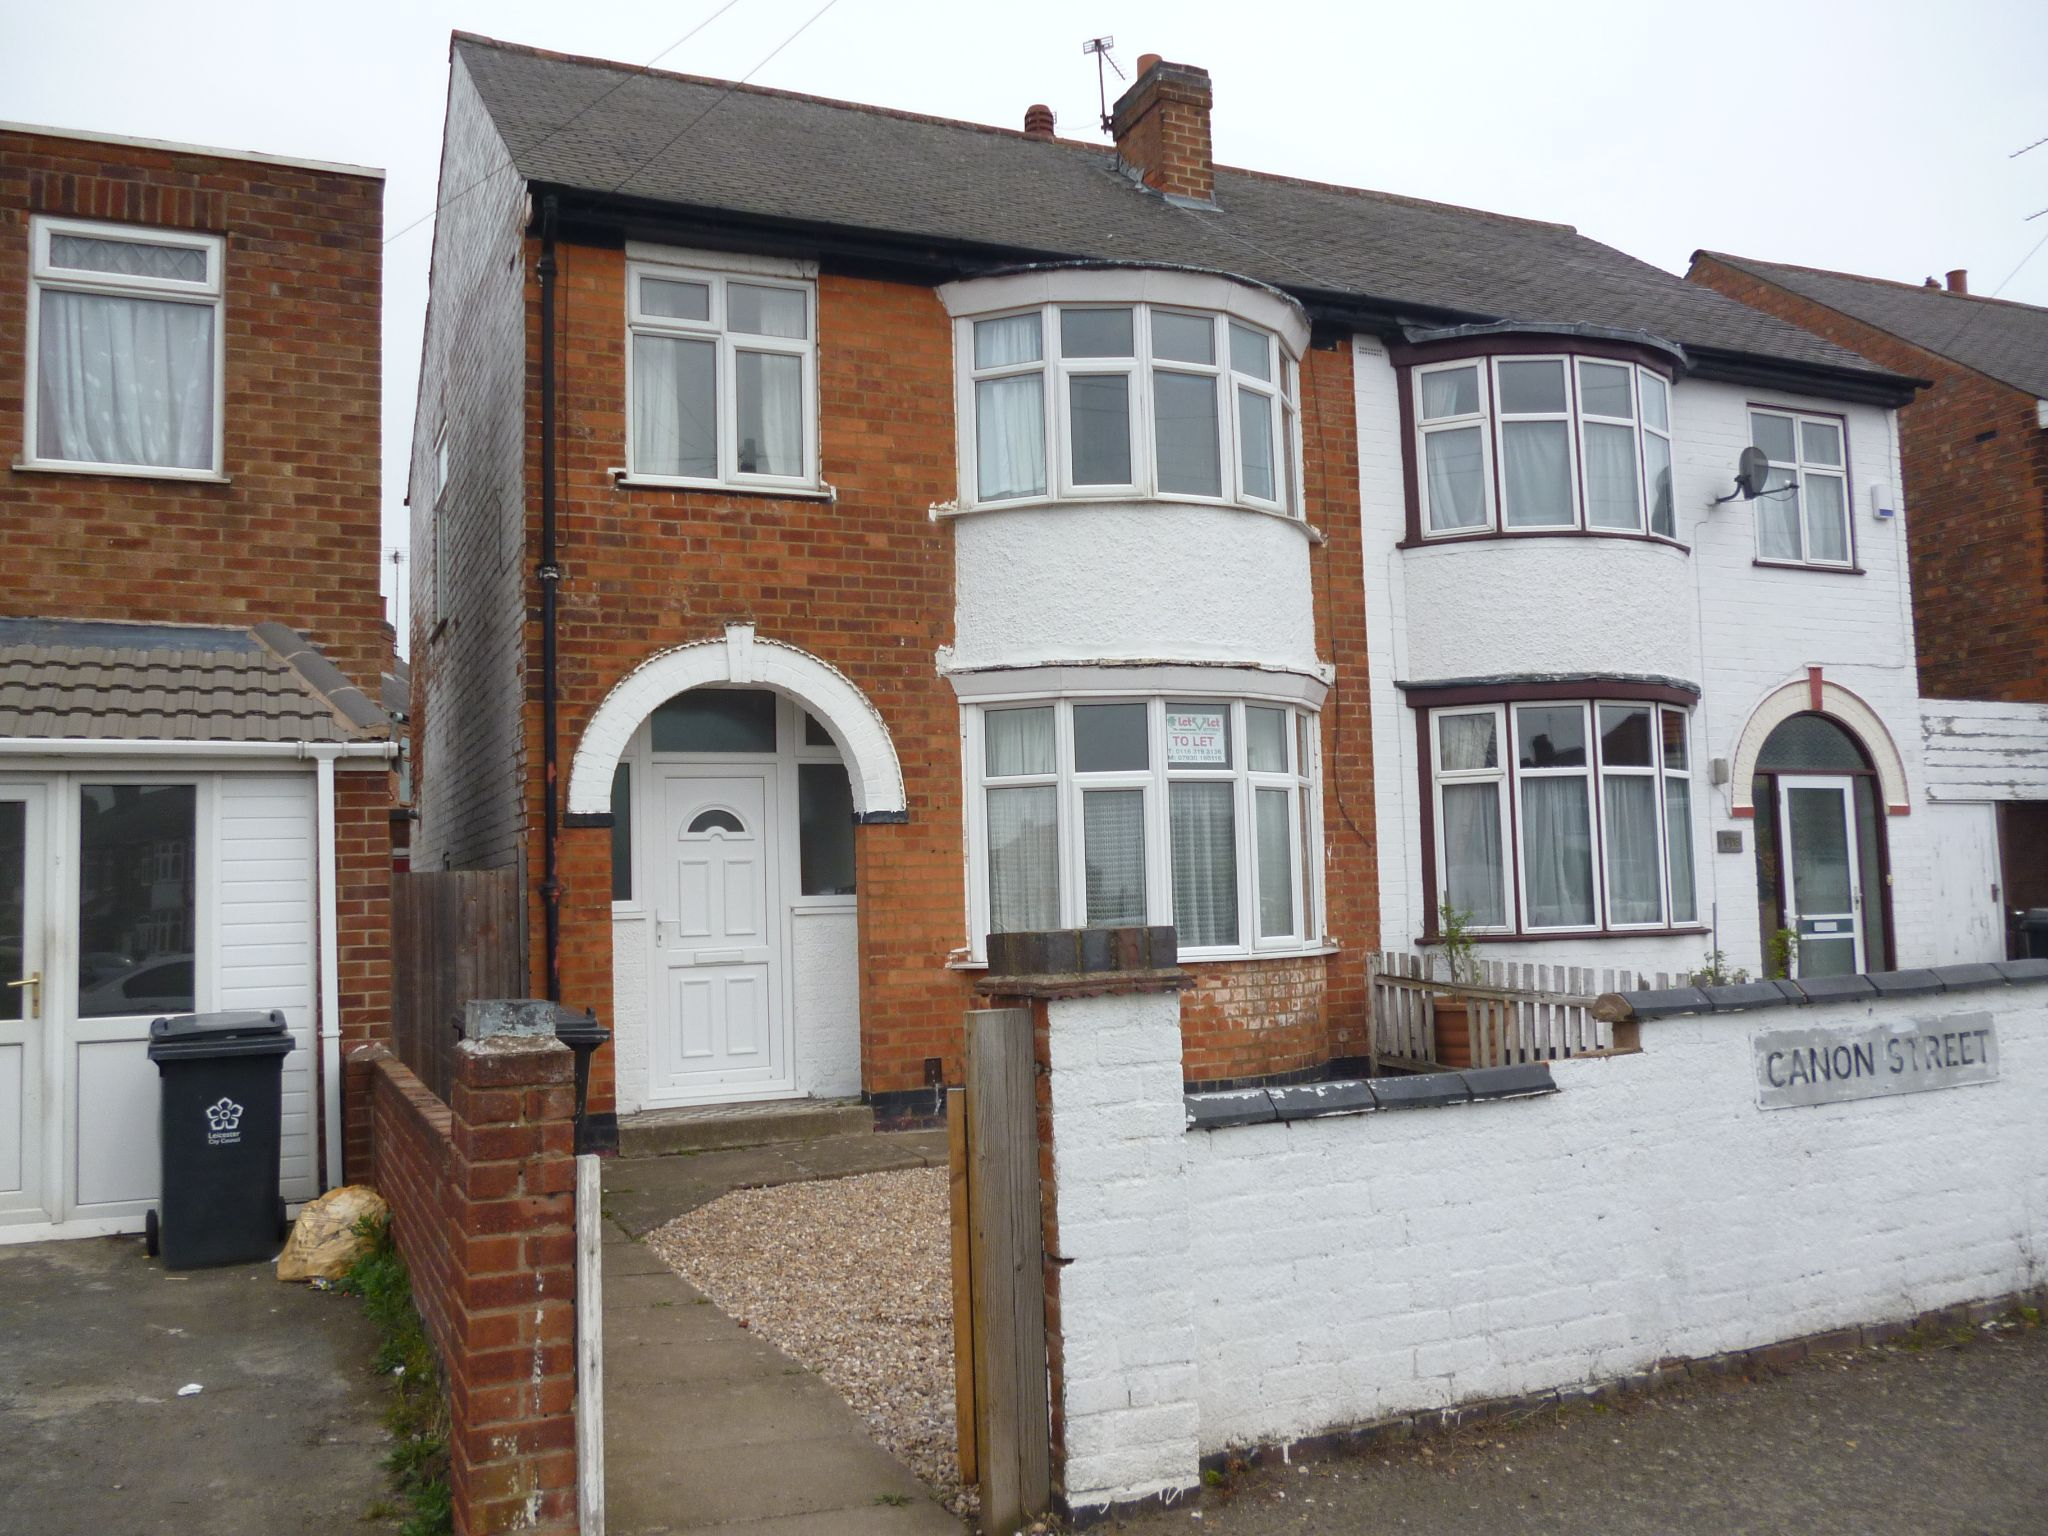 3 Bedroom Semi-detached House To Let 176 Canon Street Main Image